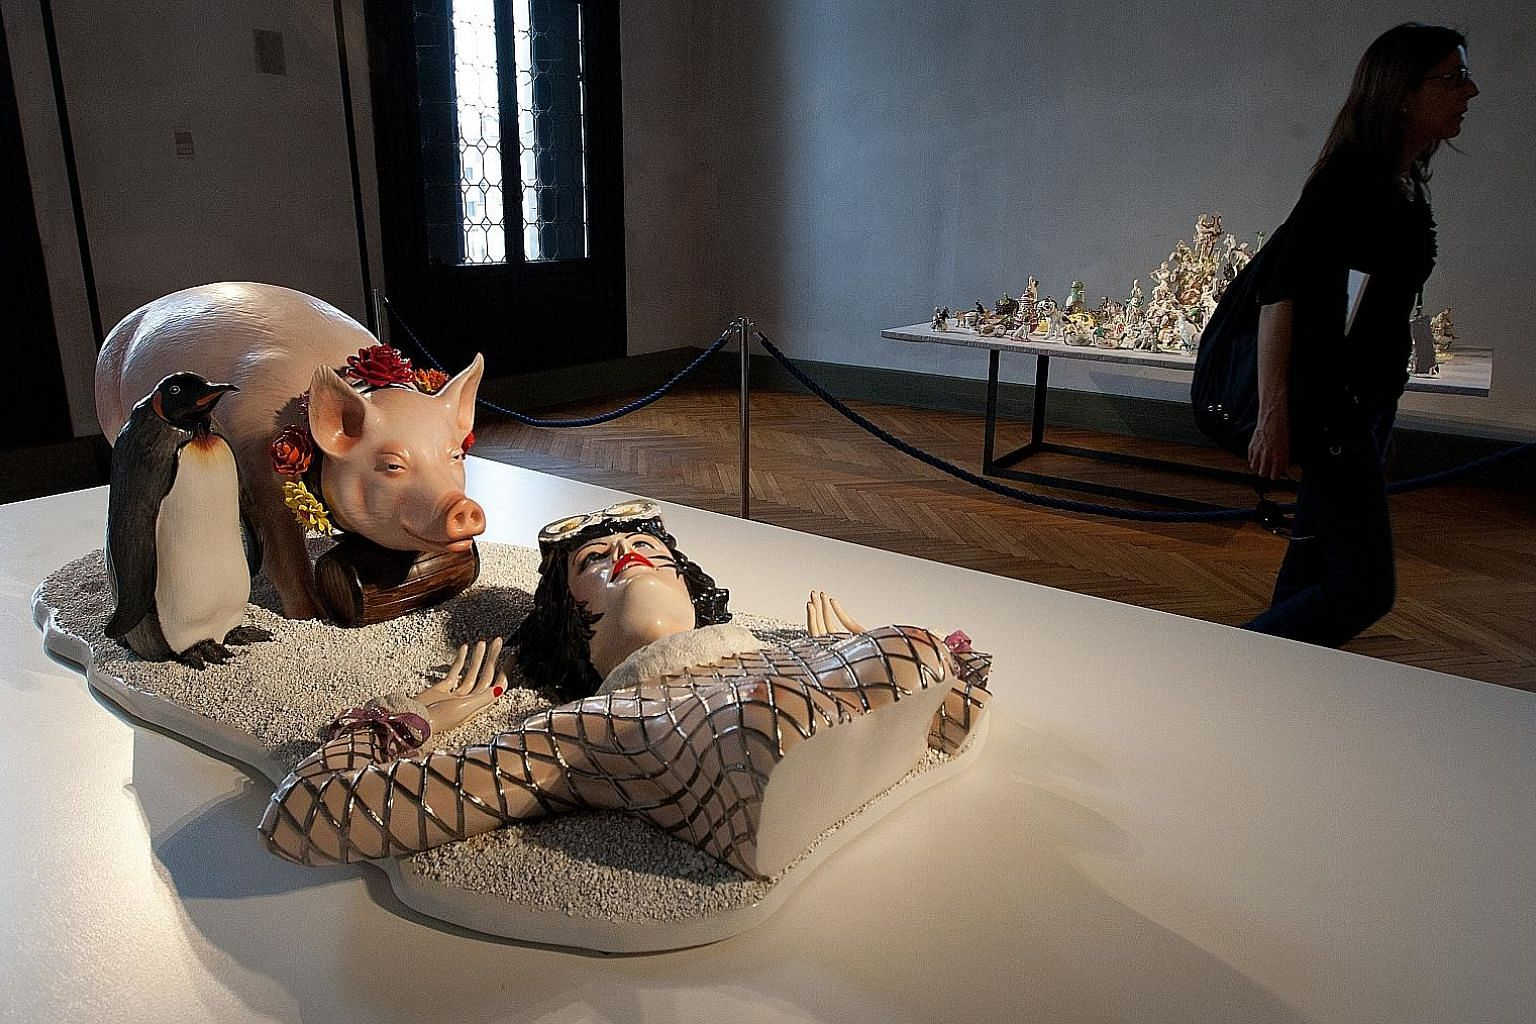 Fait d'hiver (1988, above), a sculpture by American artist Jeff Koons, at the Venice Biennale in 2011.